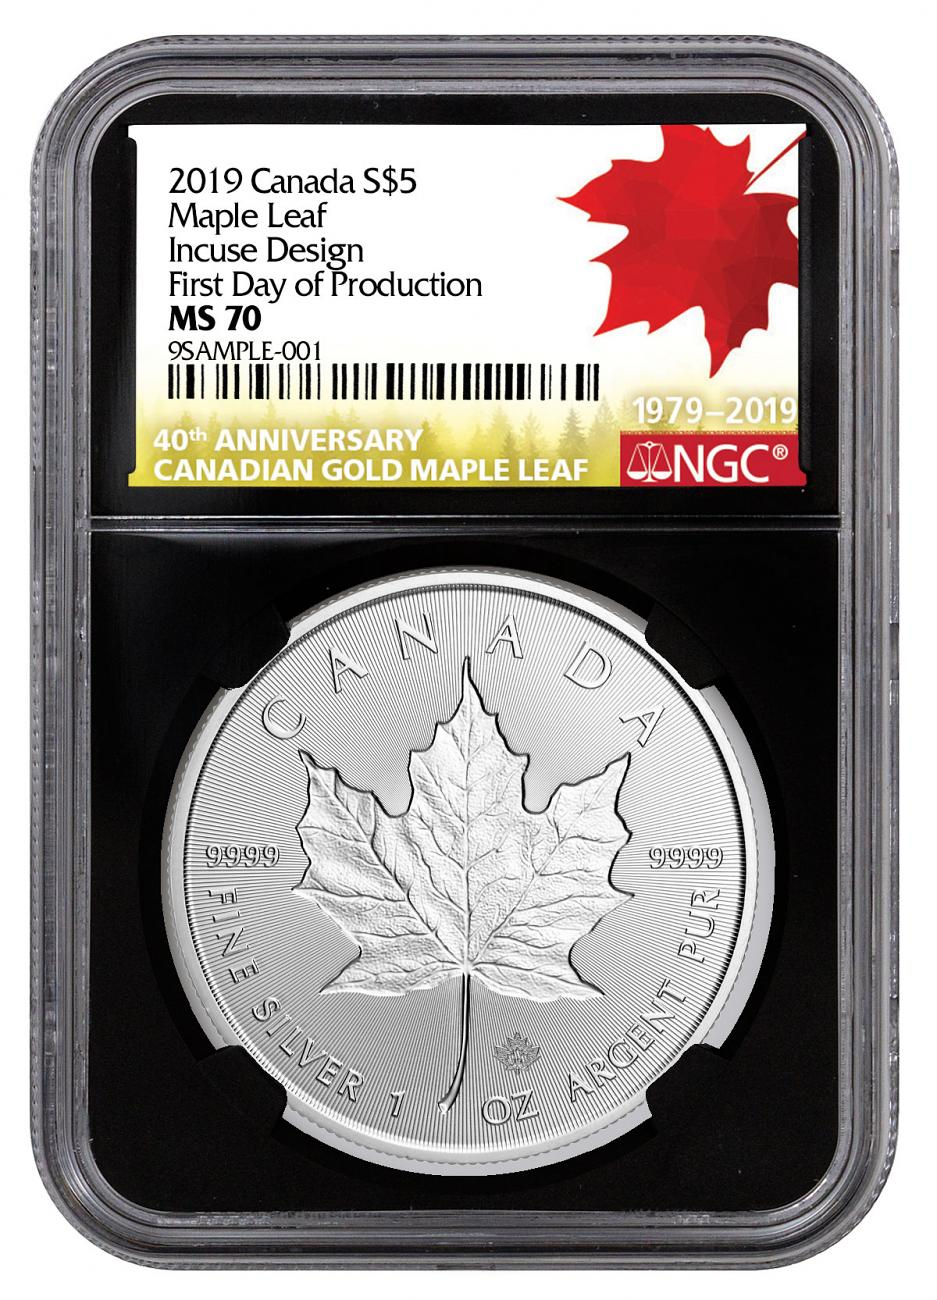 2019 Canada 1 oz Incused Silver Maple Leaf $5 Coin Scarce and Unique Coin Division NGC MS70 First Day of Production Black Core Holder 40th Anniversary Gold Maple Leaf Label